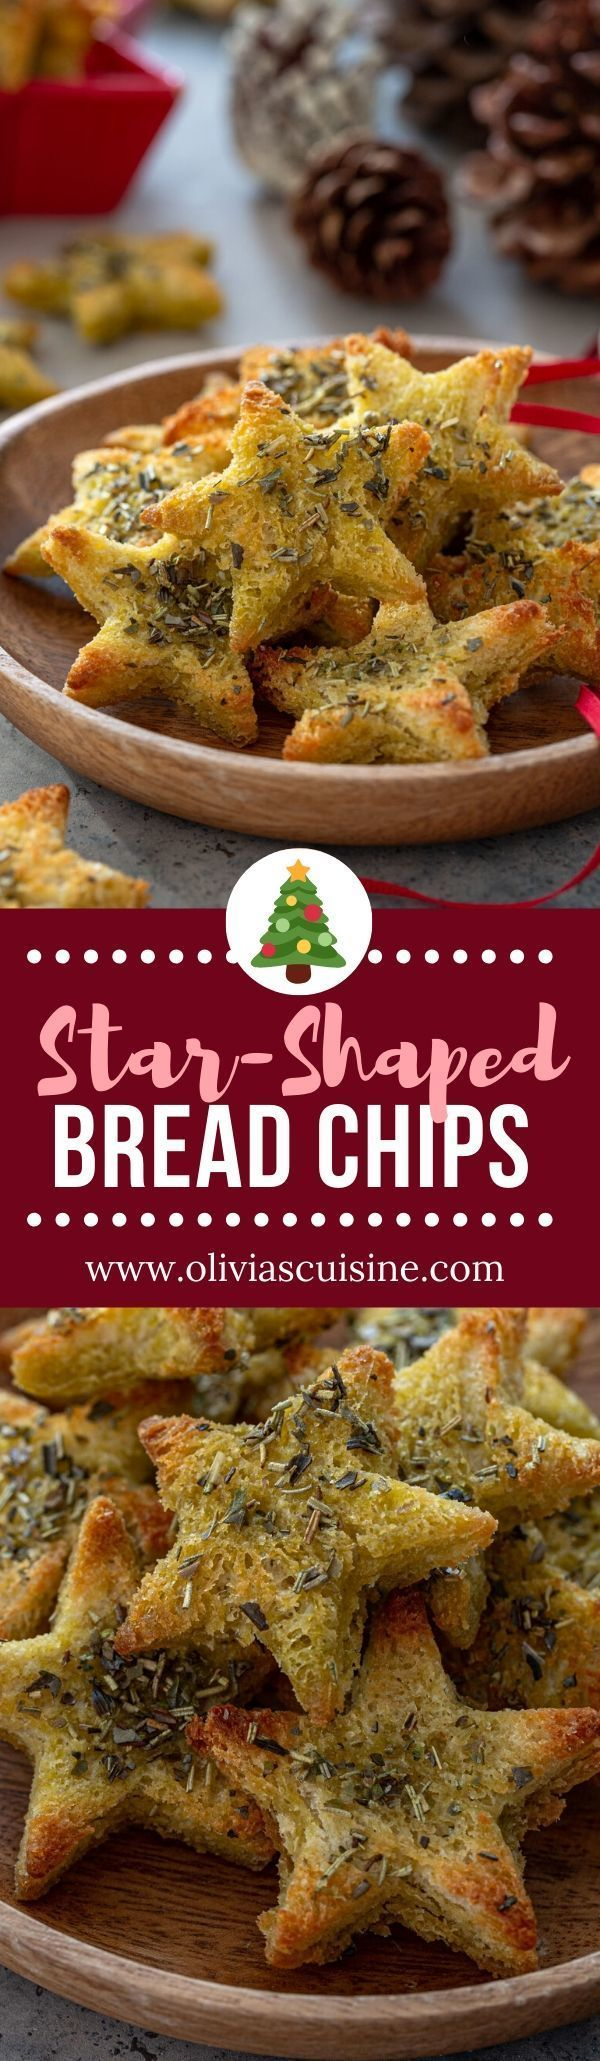 Star Bread Chips | www.oliviascuisine.com | Make your holiday appetizer table extra festive with these cute star bread chips! Insanely easy to make, they will be a great addition to any cheeseboard or a fun base for canapés. (Follow @oliviascuisine for more delicious recipes!) #bread #crackers #chips #crisps #leftoverbread #stalebread #christmas #appetizers